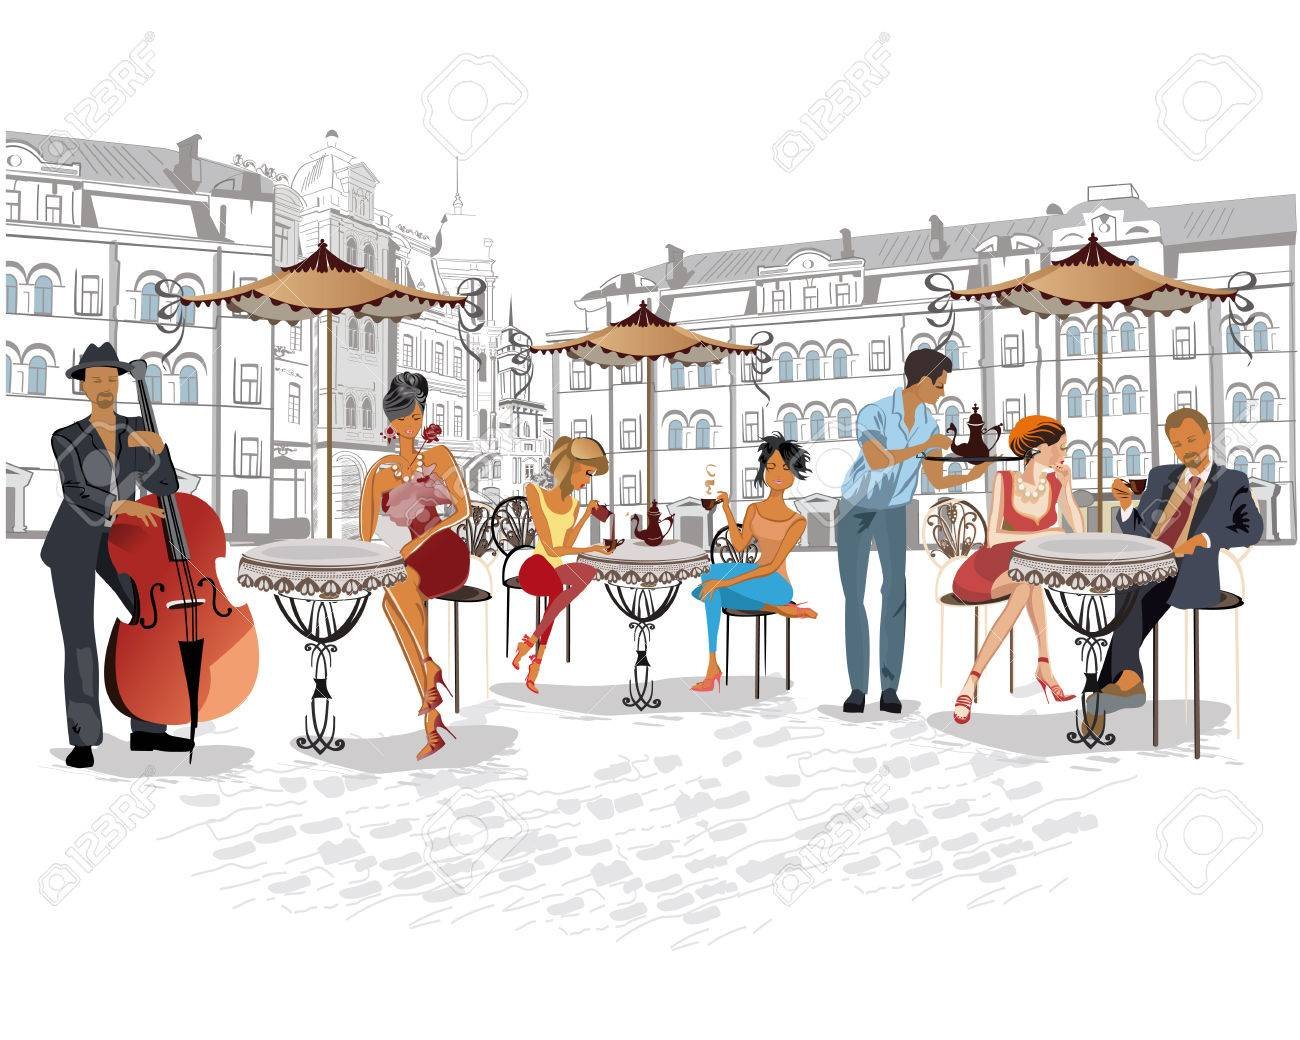 Series of the streets with people in the old city. Waiters serve the tables. Street cafe. Street musicians. Foto de archivo - 60164114